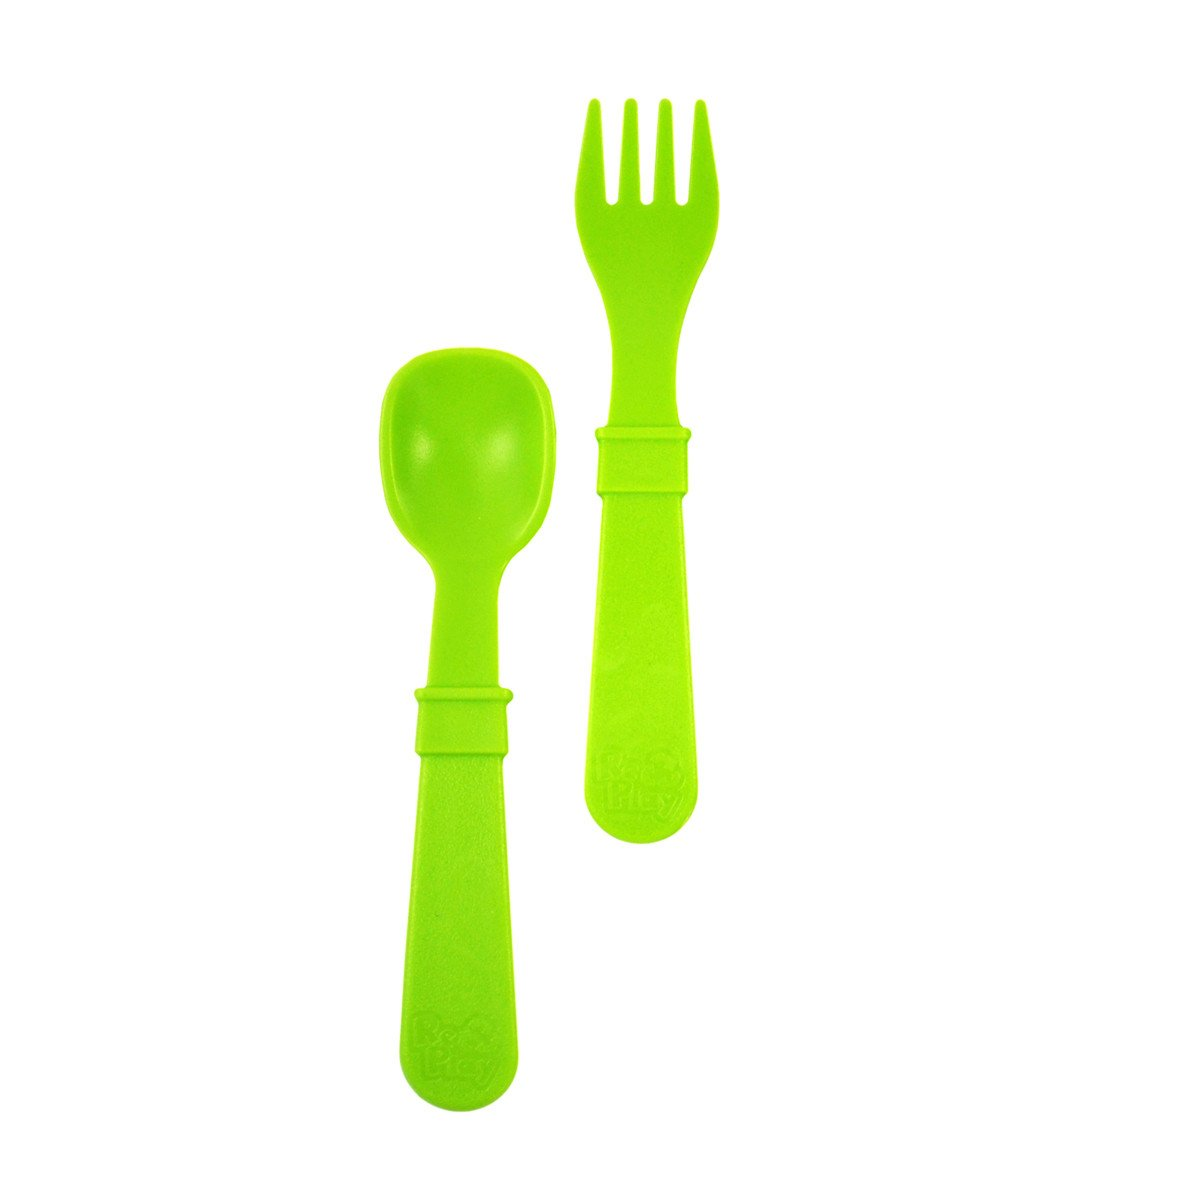 Replay Fork and Spoon Set Replay Lifestyle Light Green at Little Earth Nest Eco Shop